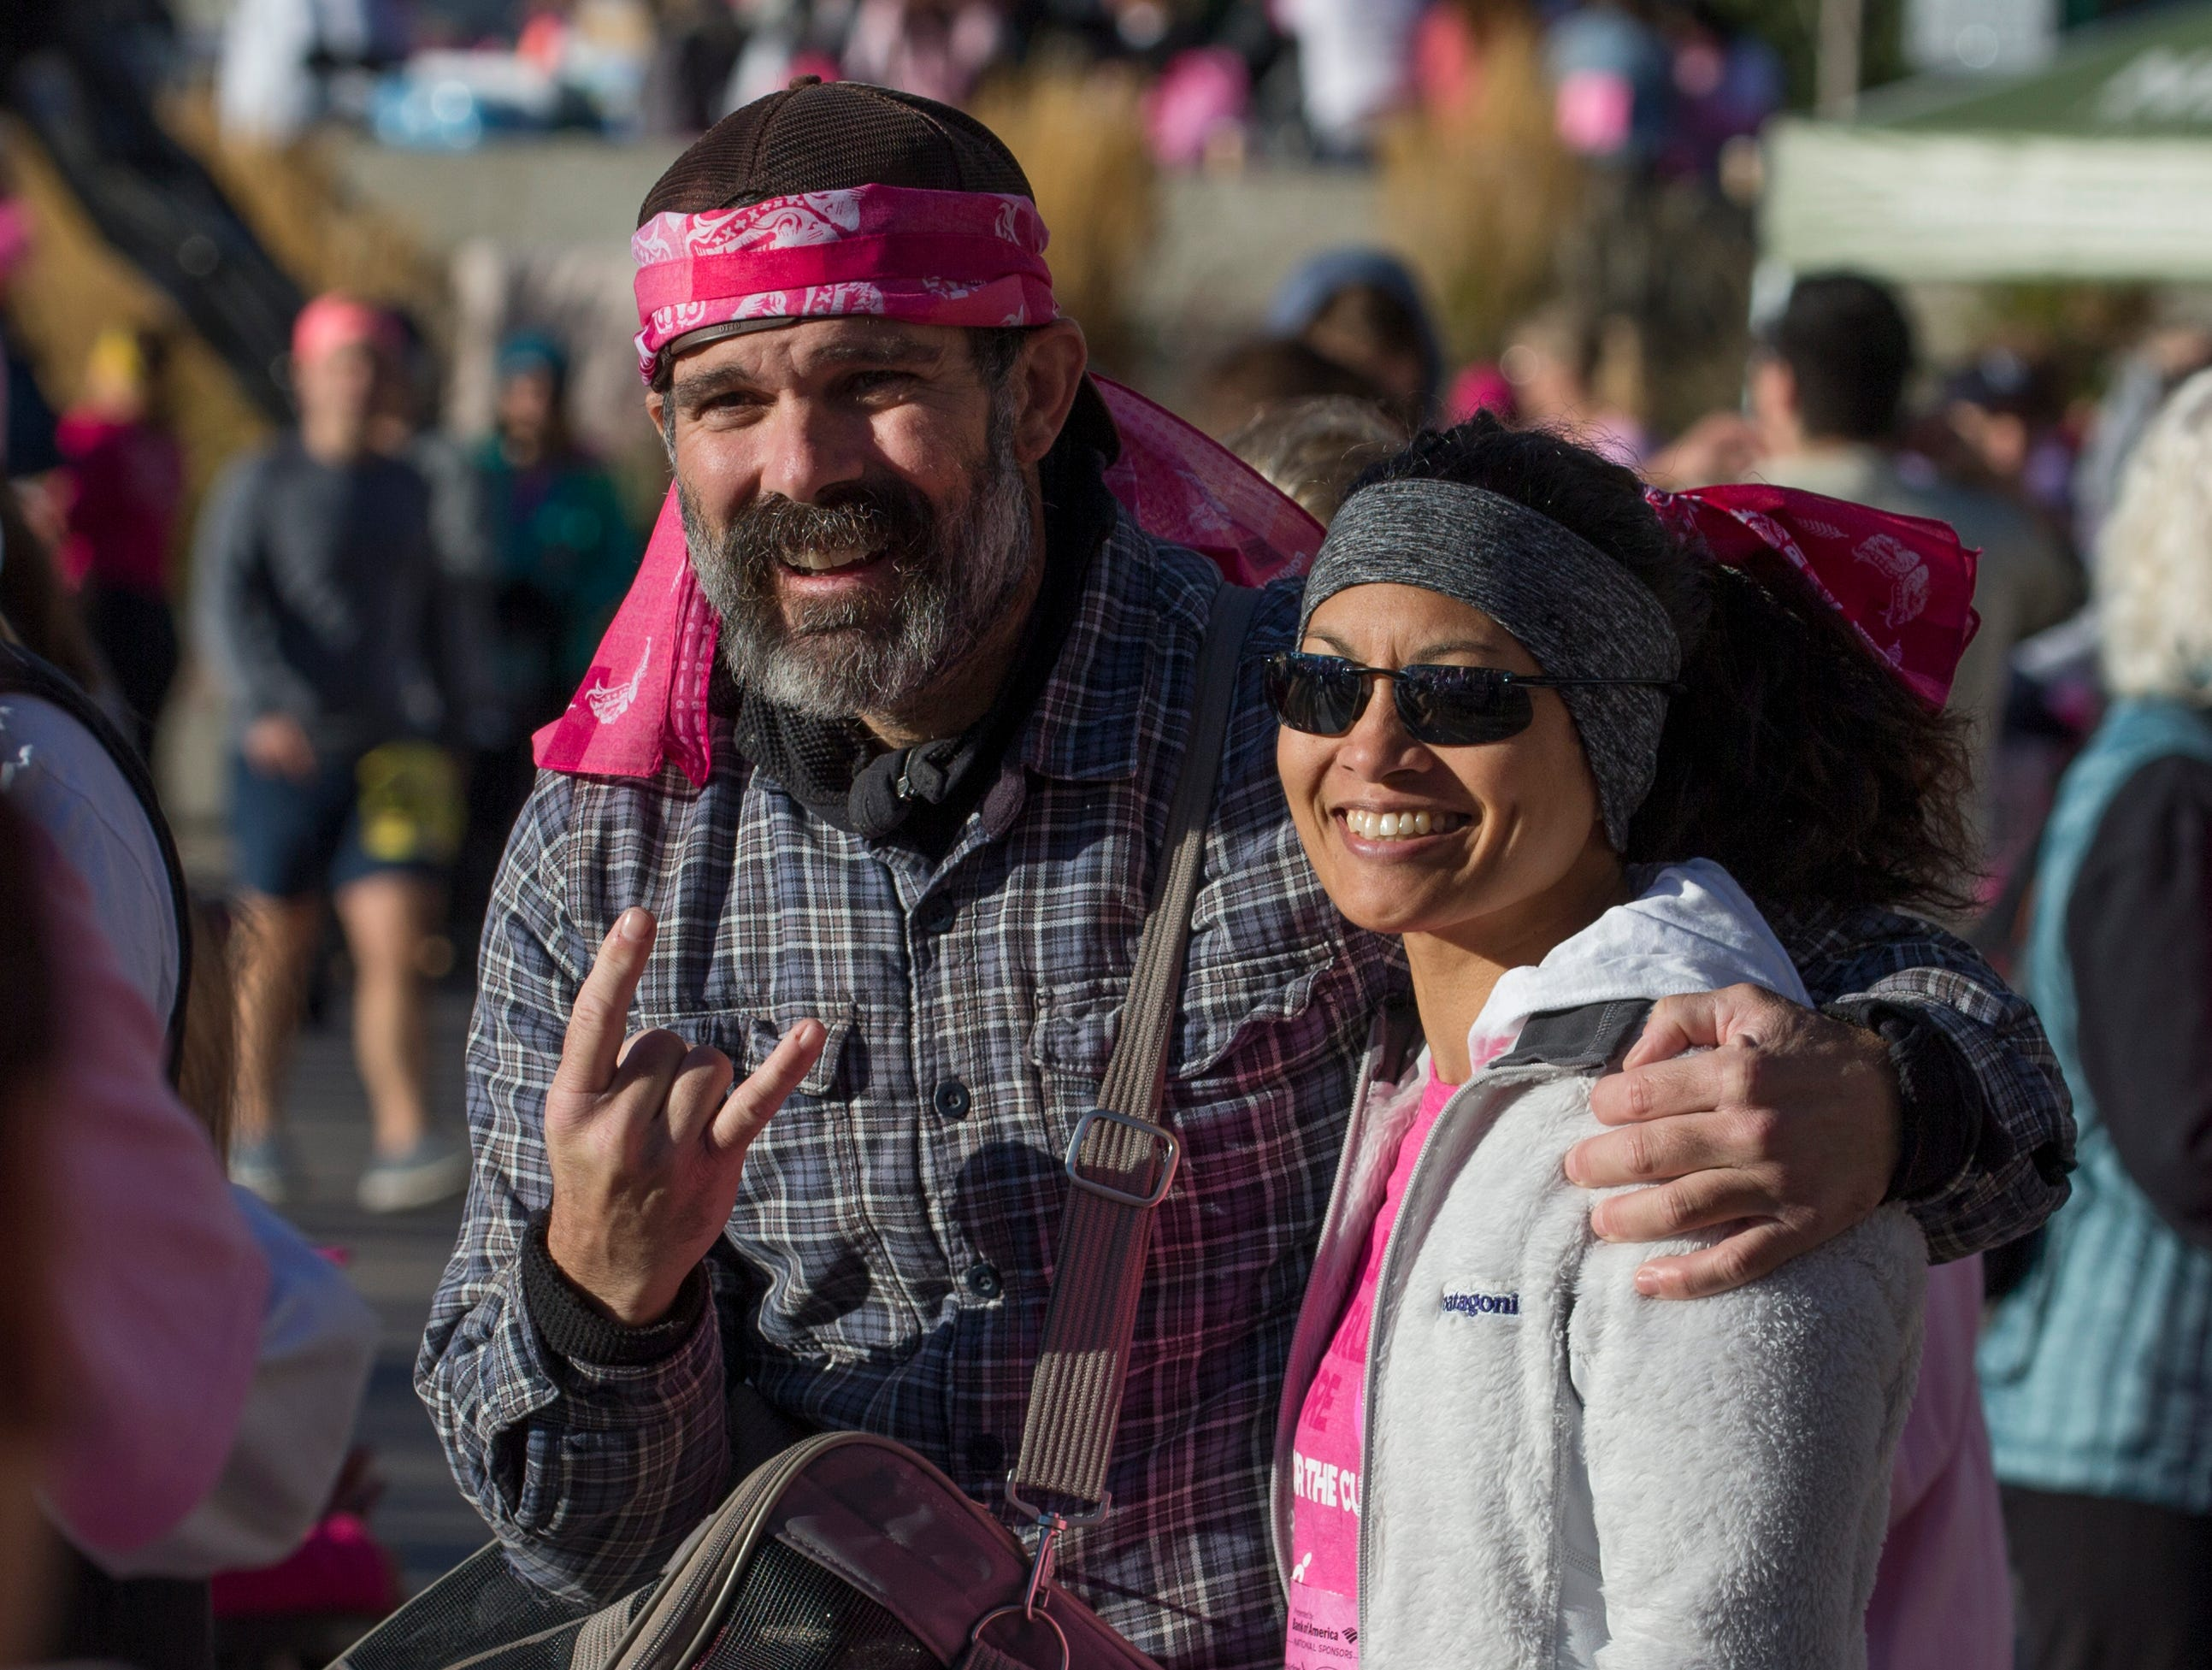 Pete and Joanne Henze during the Susan G. Komen Race for the Cure on Sunday, October 14,  2018 in downtown Reno.